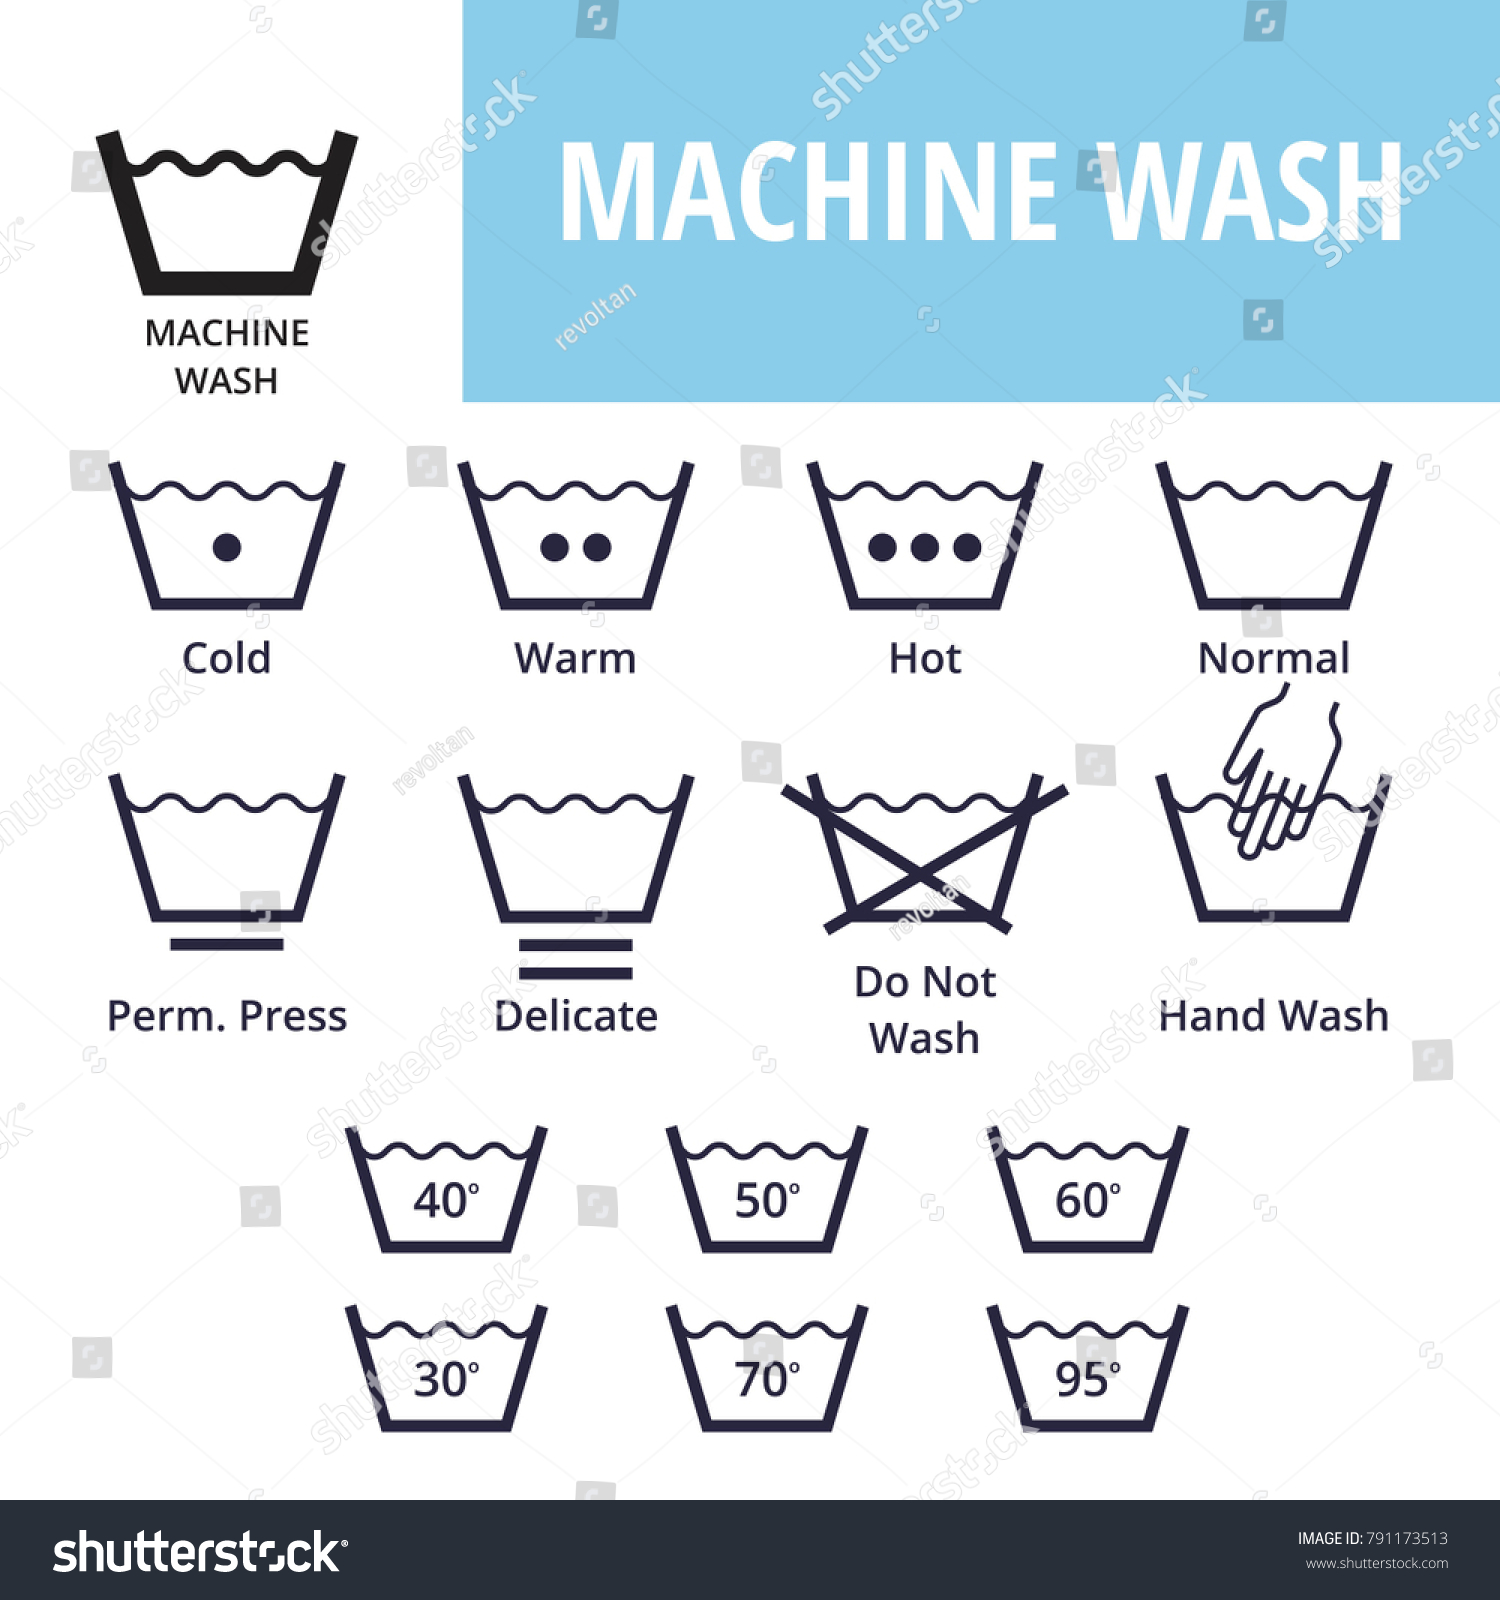 Machine Wash Textile Care Symbols Stock Vector Royalty Free